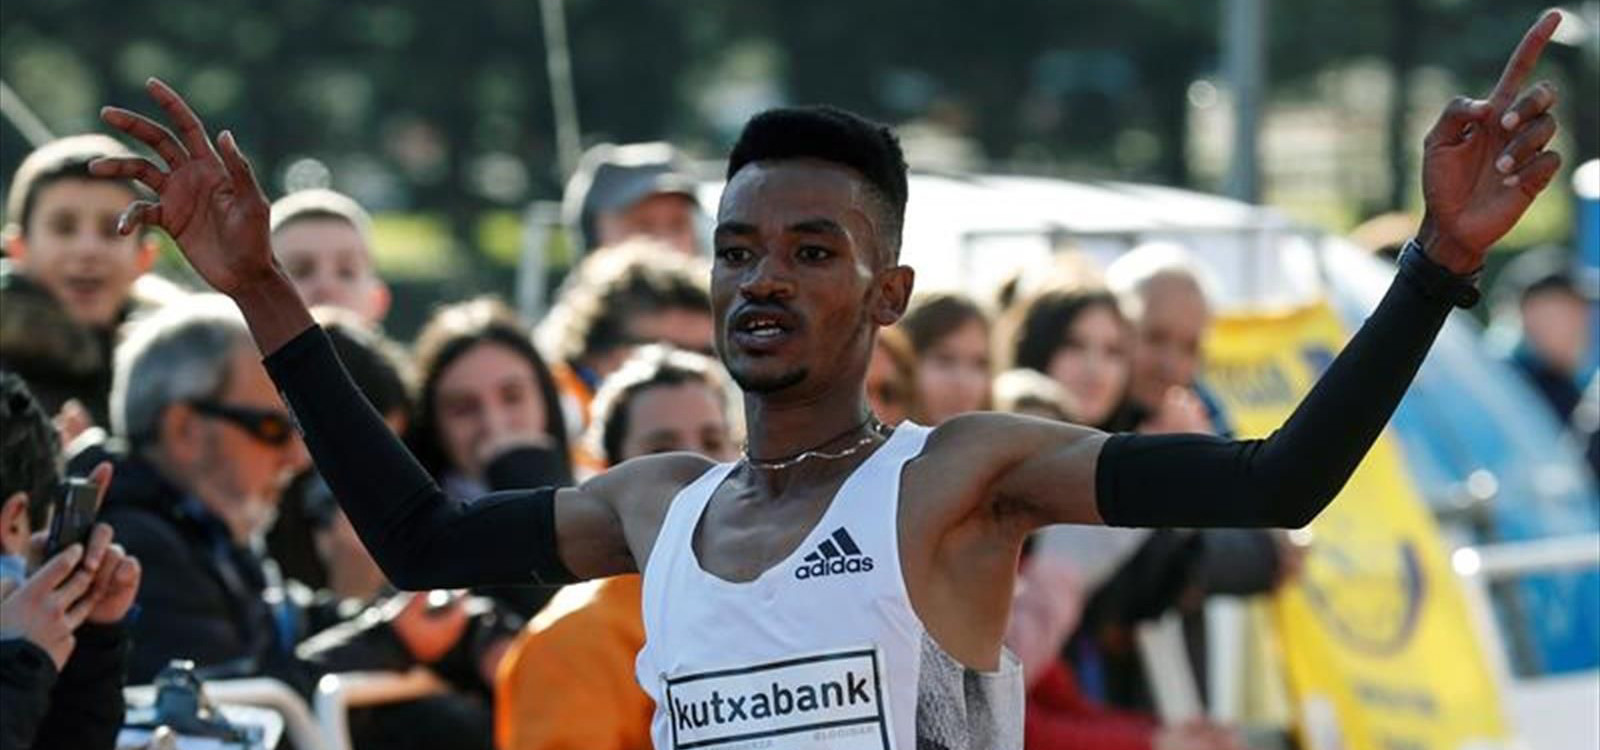 Ethiopia's Tadese Worku and Kenya's Hellen Obiri will be the favorites athletes at the Cross Internacional de Itálica in Santiponce on Sunday